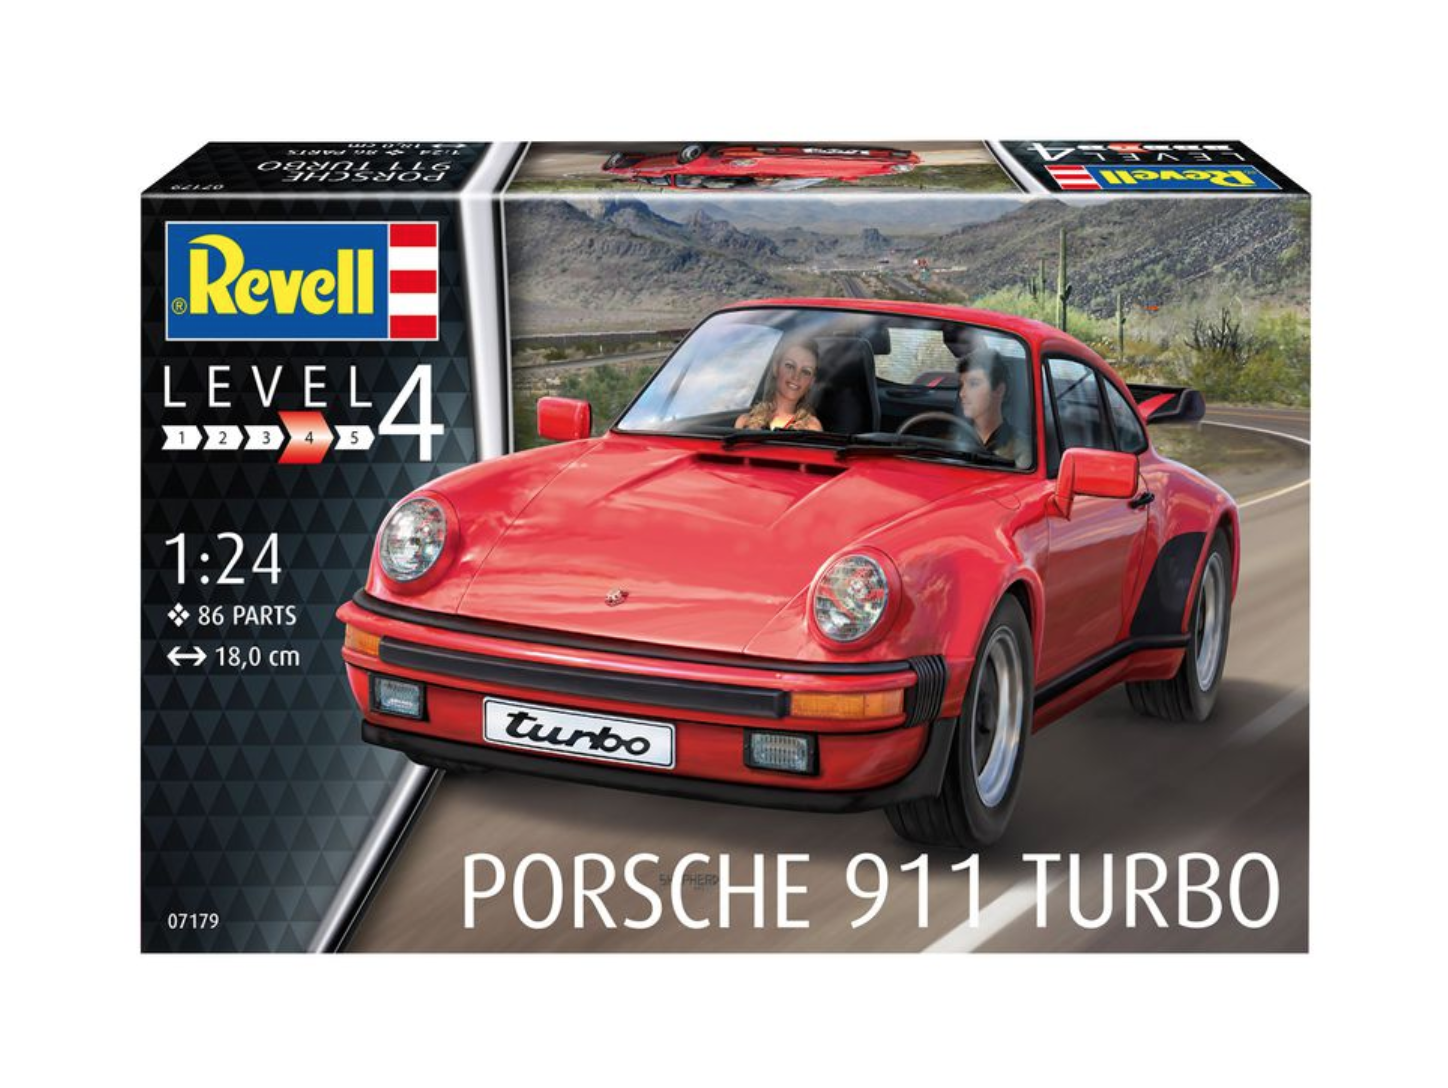 Porsche 911 Turbo By Revell 1 24 Scale Choice Gear